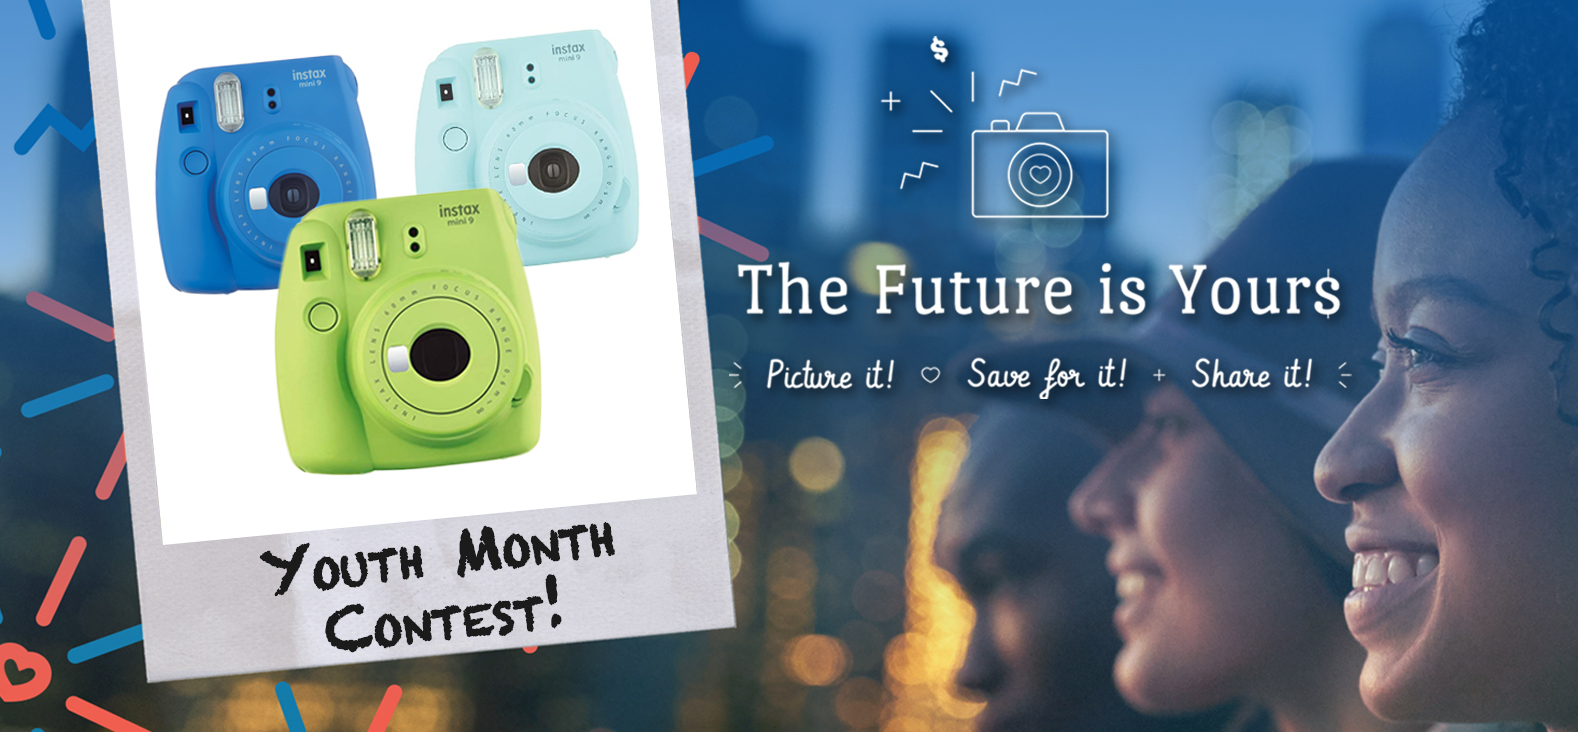 The future is yours. Picture it, save for it, share it!  There is a youth month contest going on during April for a chance to win one of 3 Fujifilm Insax Cameras!